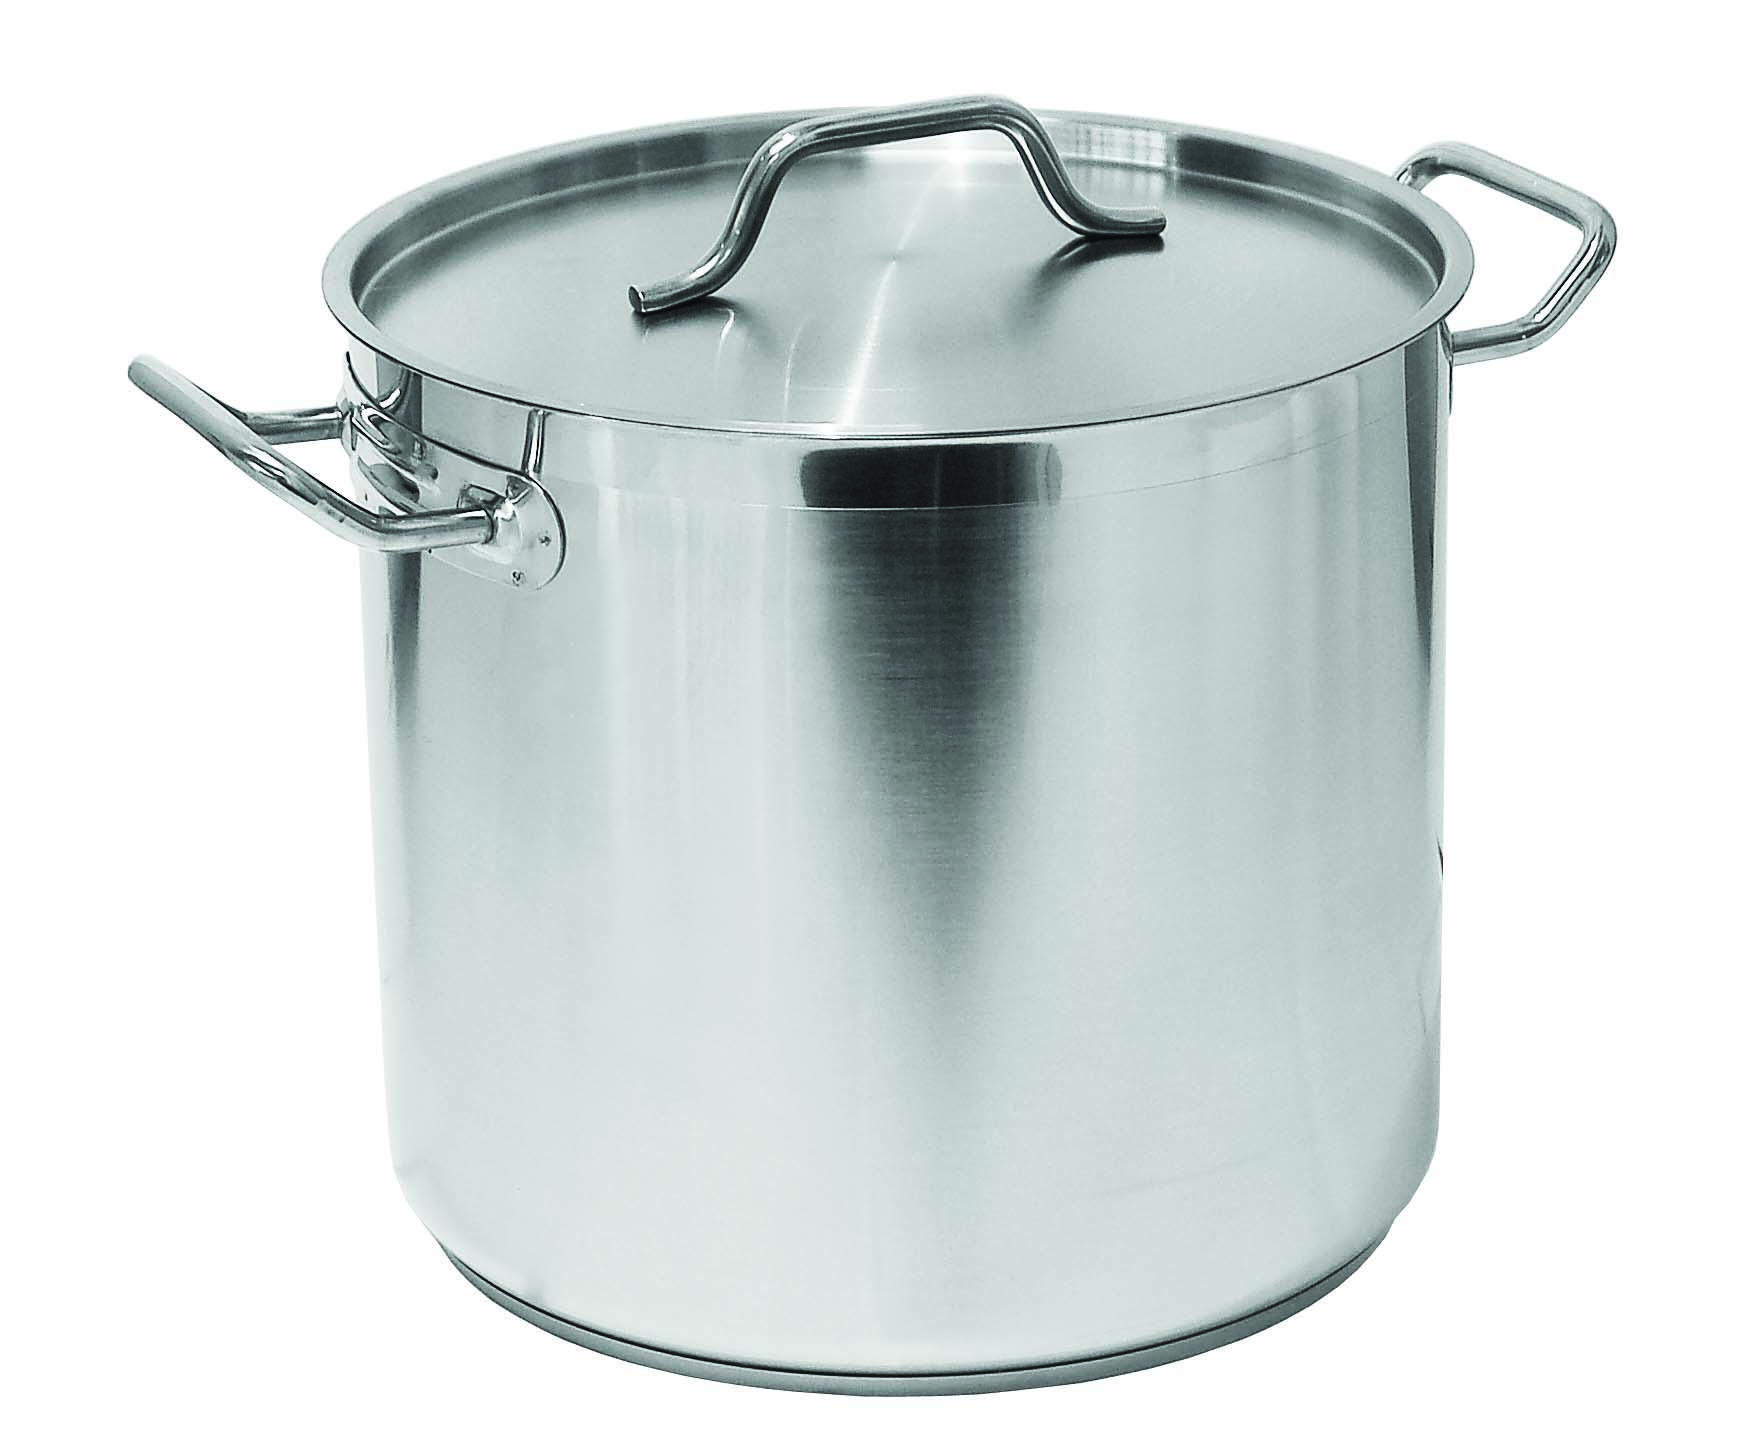 POT S/STEEL CASSEROLE (VALUE)- 4.4LT